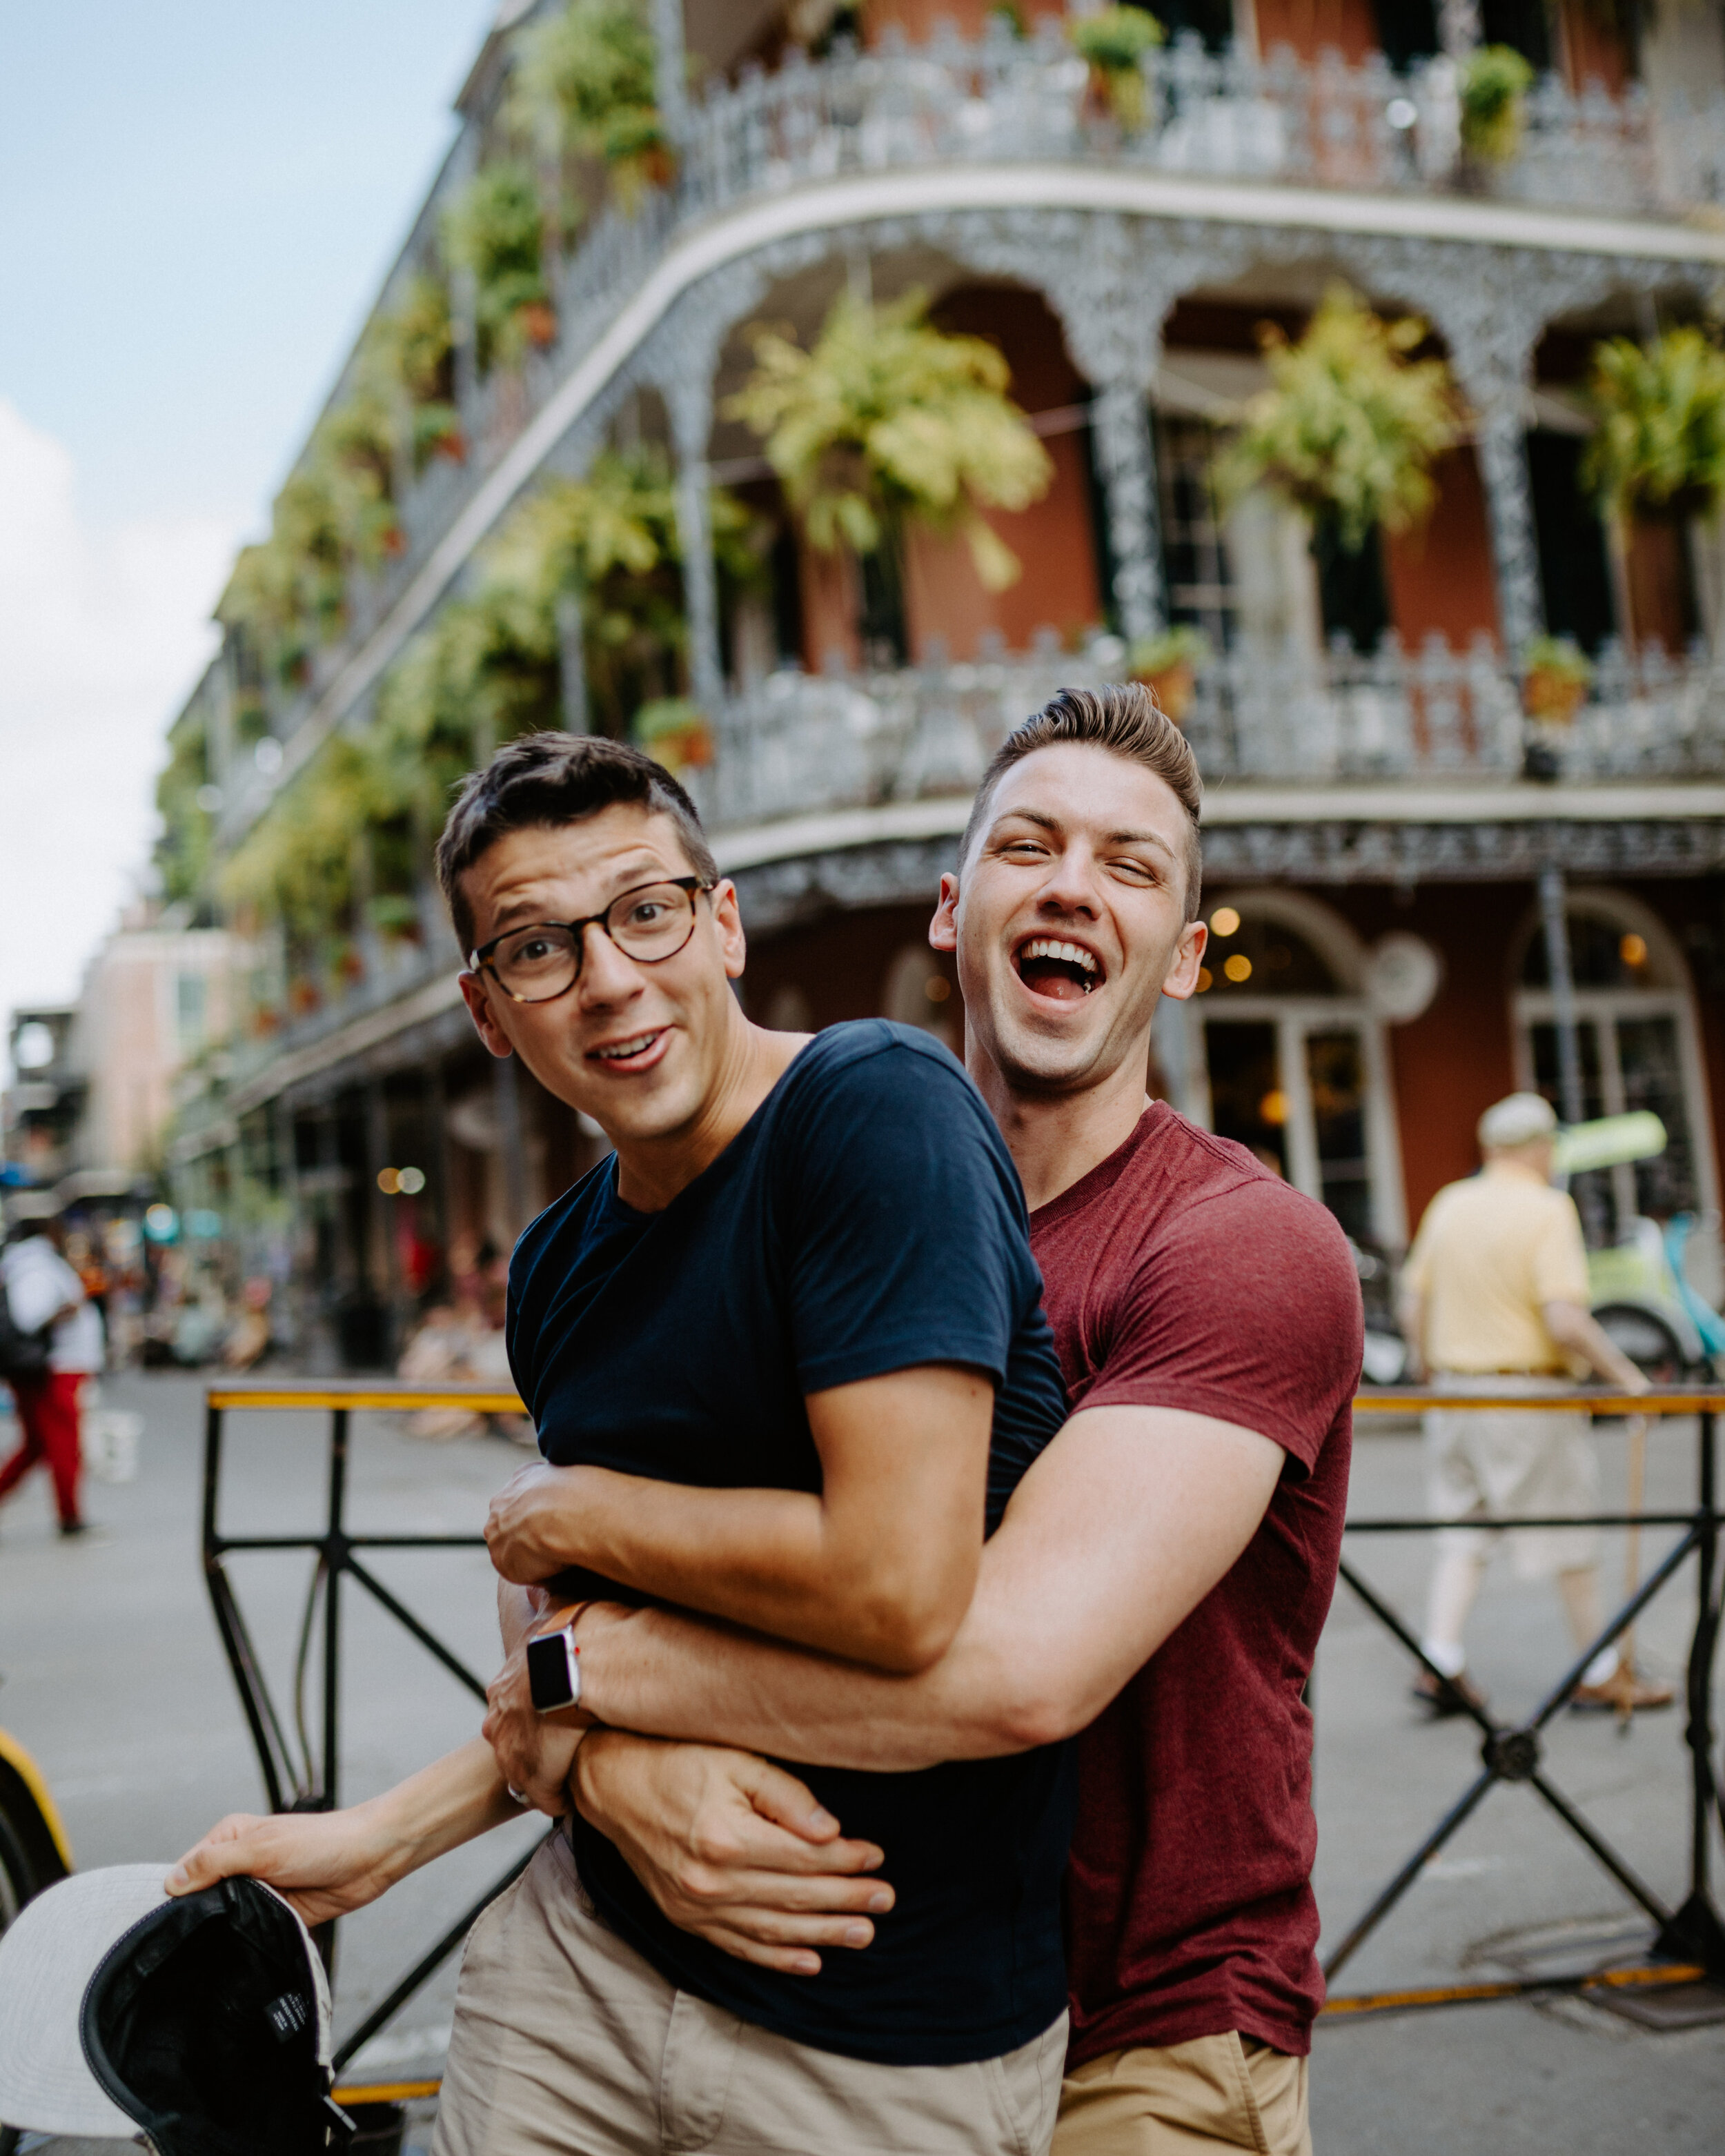 Exploring the French Quarter in New Orleans